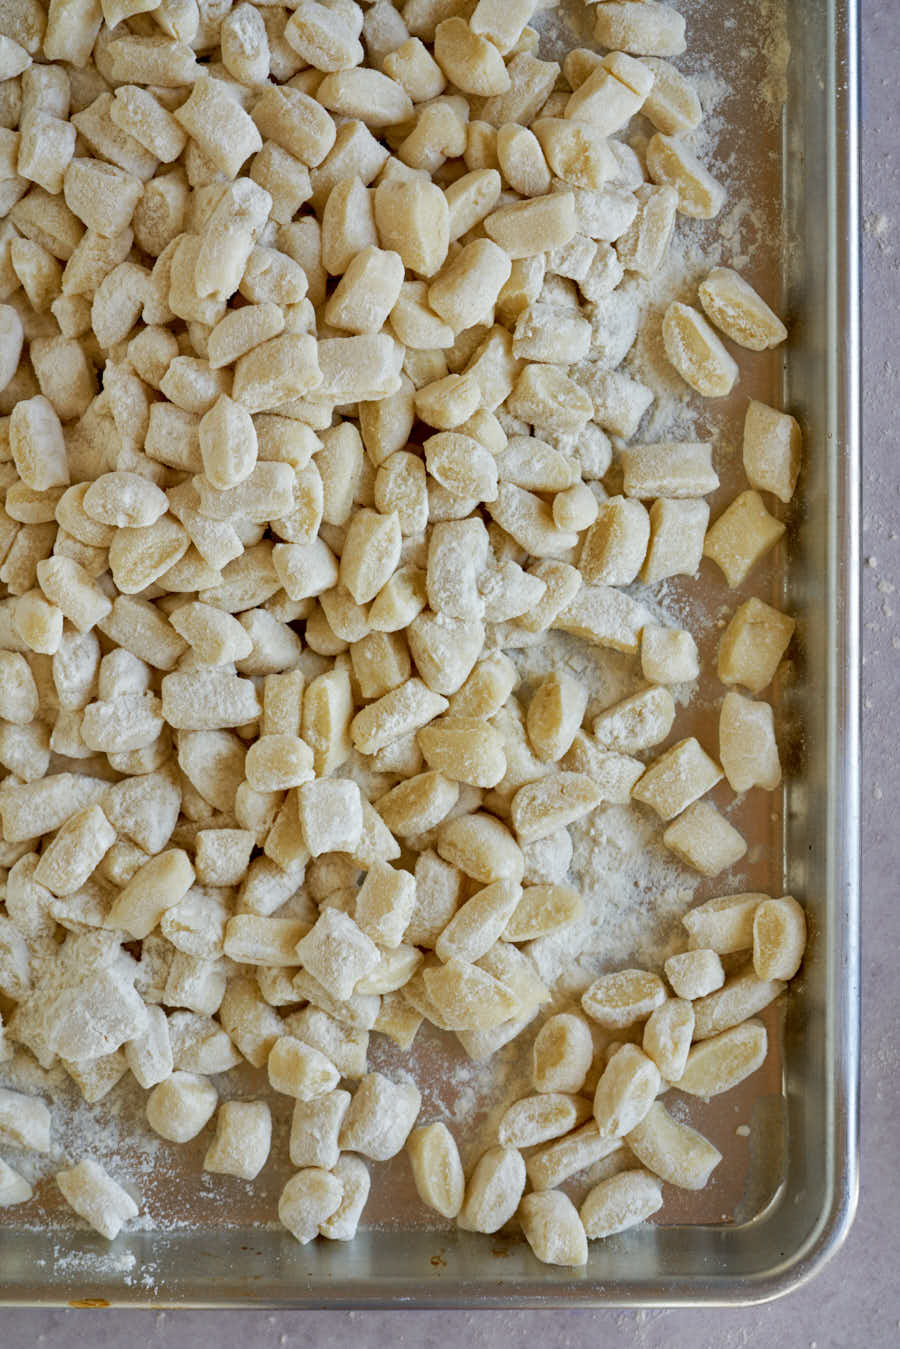 Sheet pan covered with raw gnocchi.